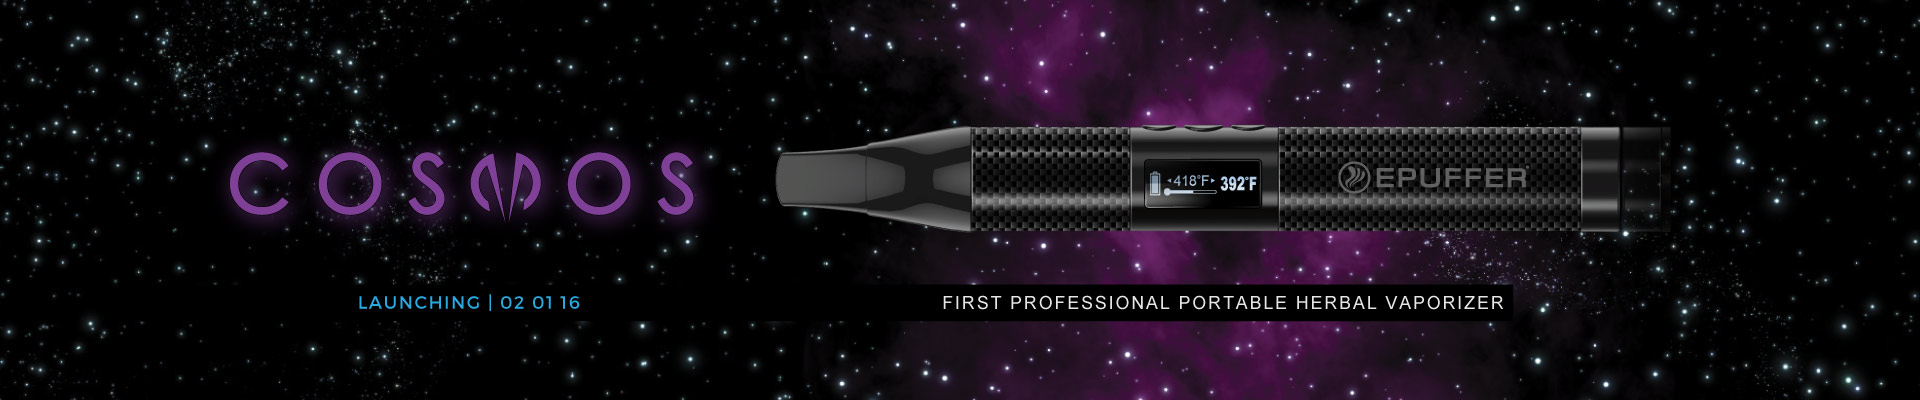 epuffer-cosmos-herbal-vaporizer